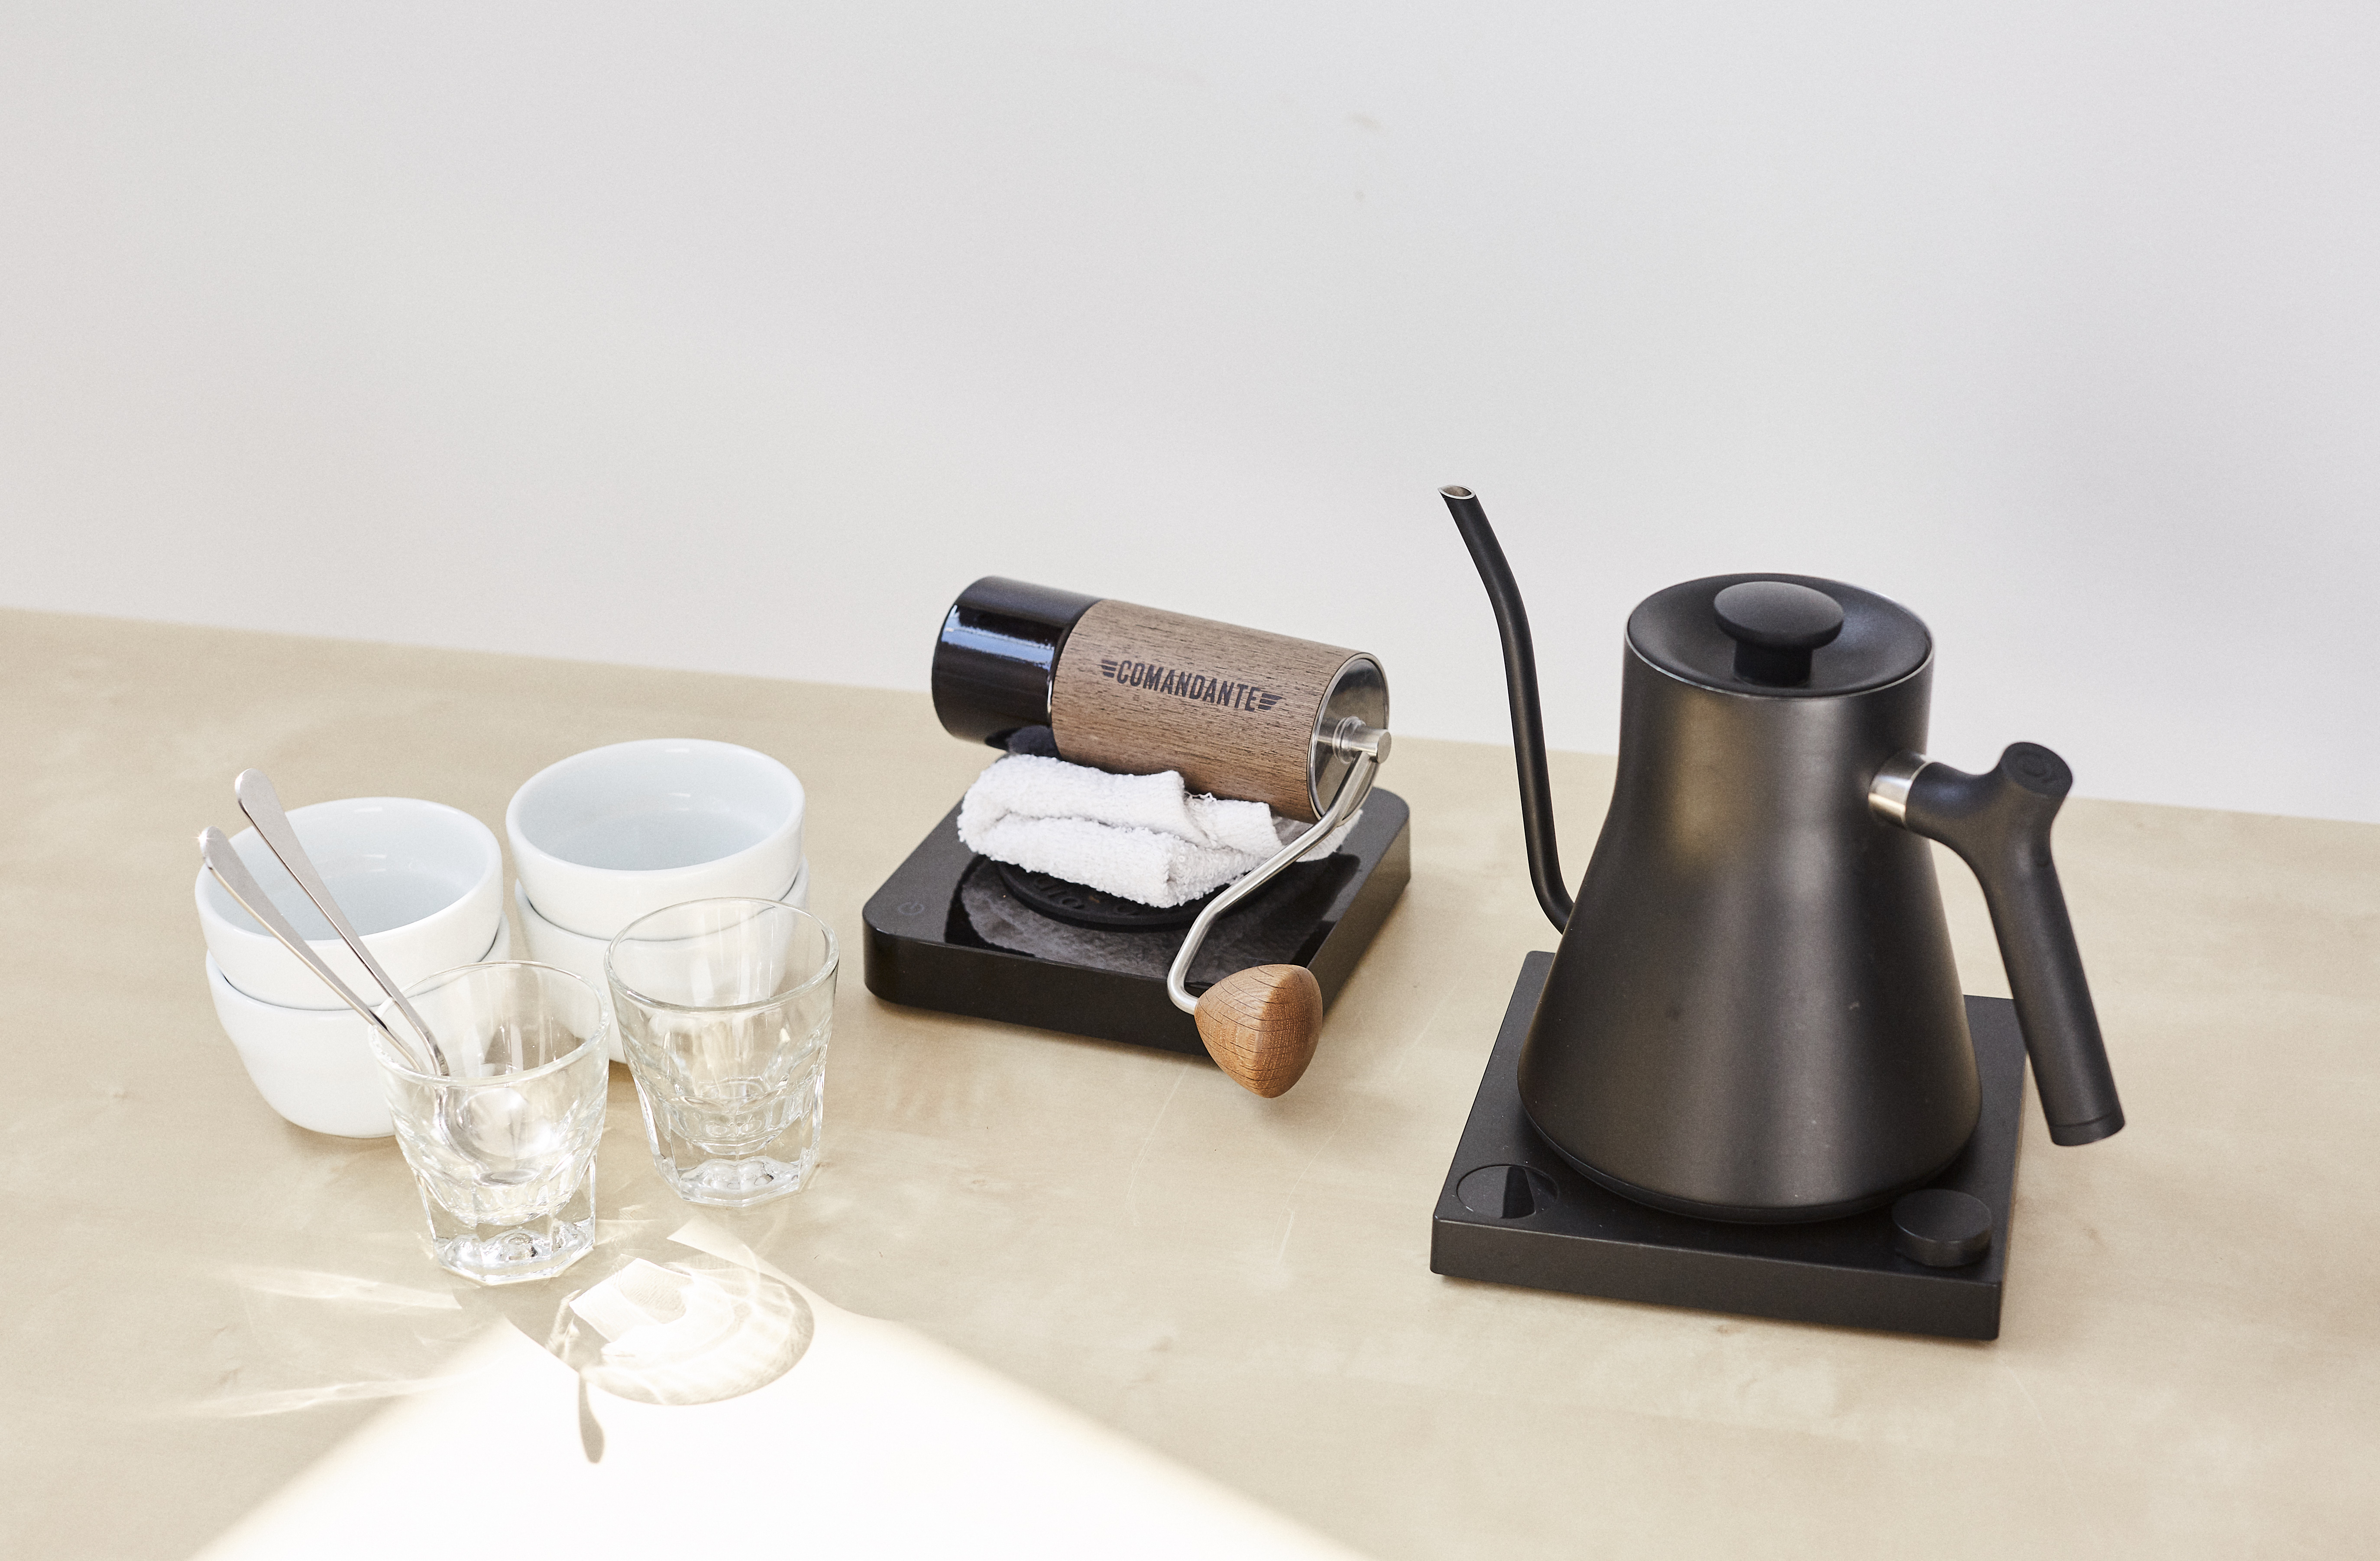 cupping bowls kettle glasses spoons and scale for cupping